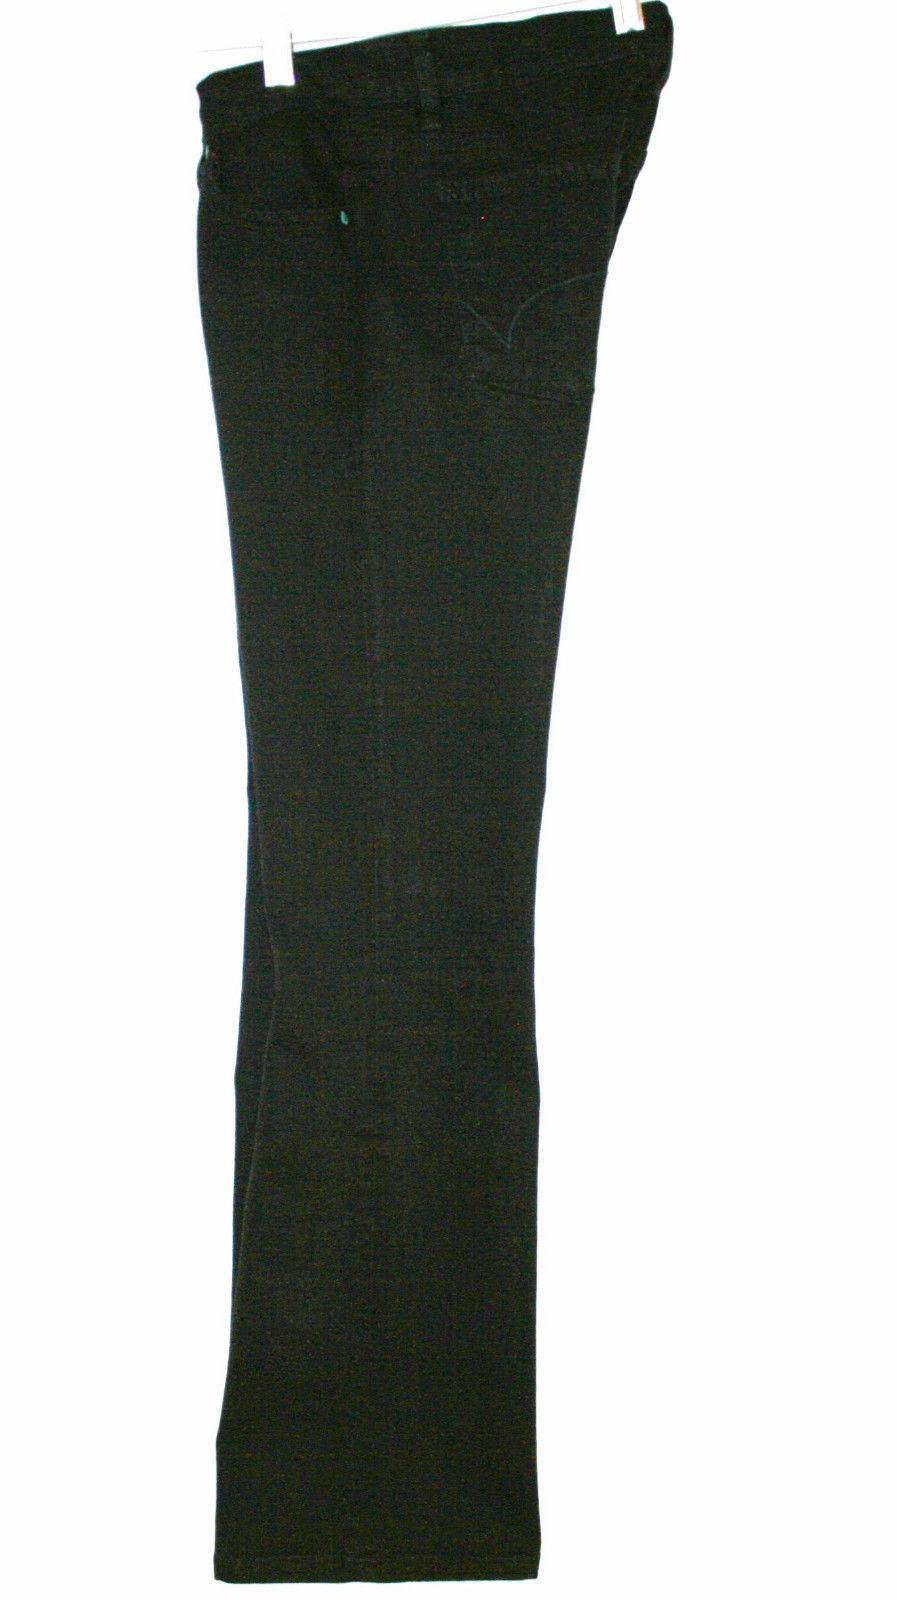 Hard Tail Forever Holly Super Low Black 5 Pocket Jeans Size 27  -Worn Once EUC-